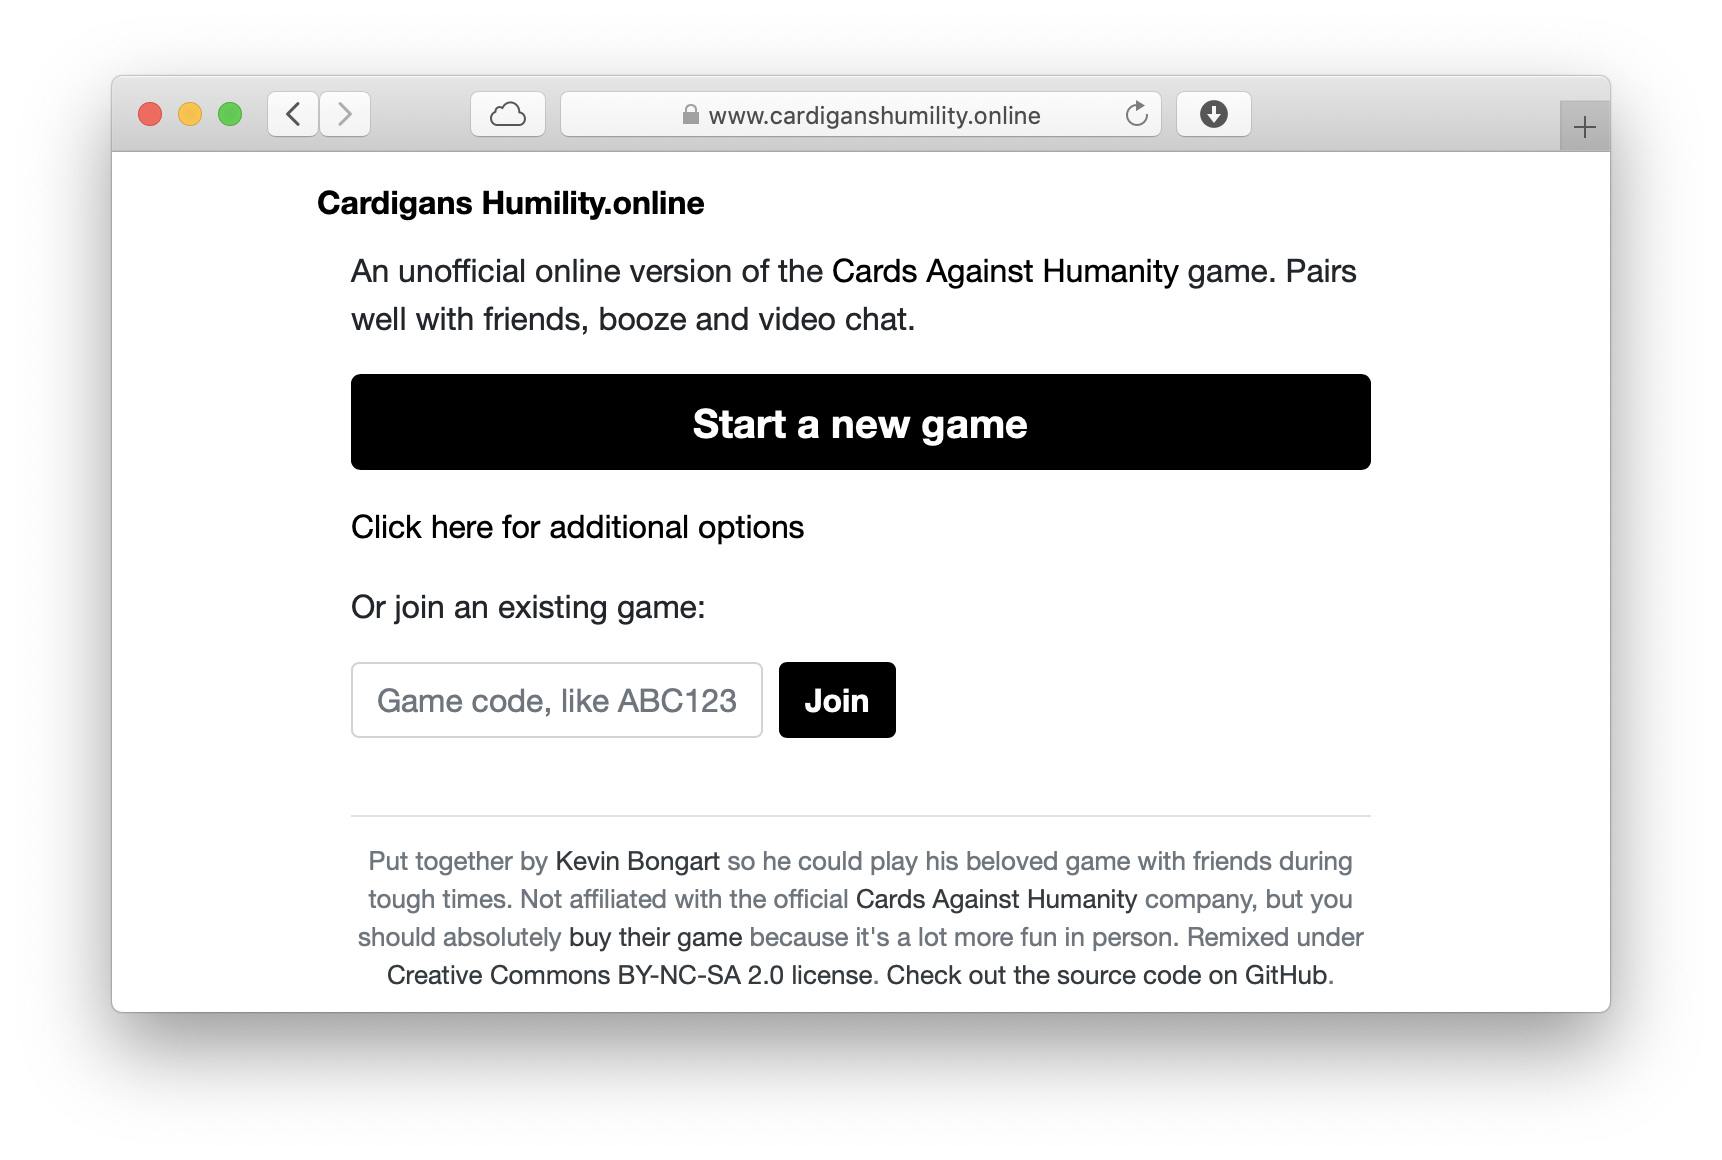 Homepage of the Cardigans Humility game. The player can start a new game or join an existing one.